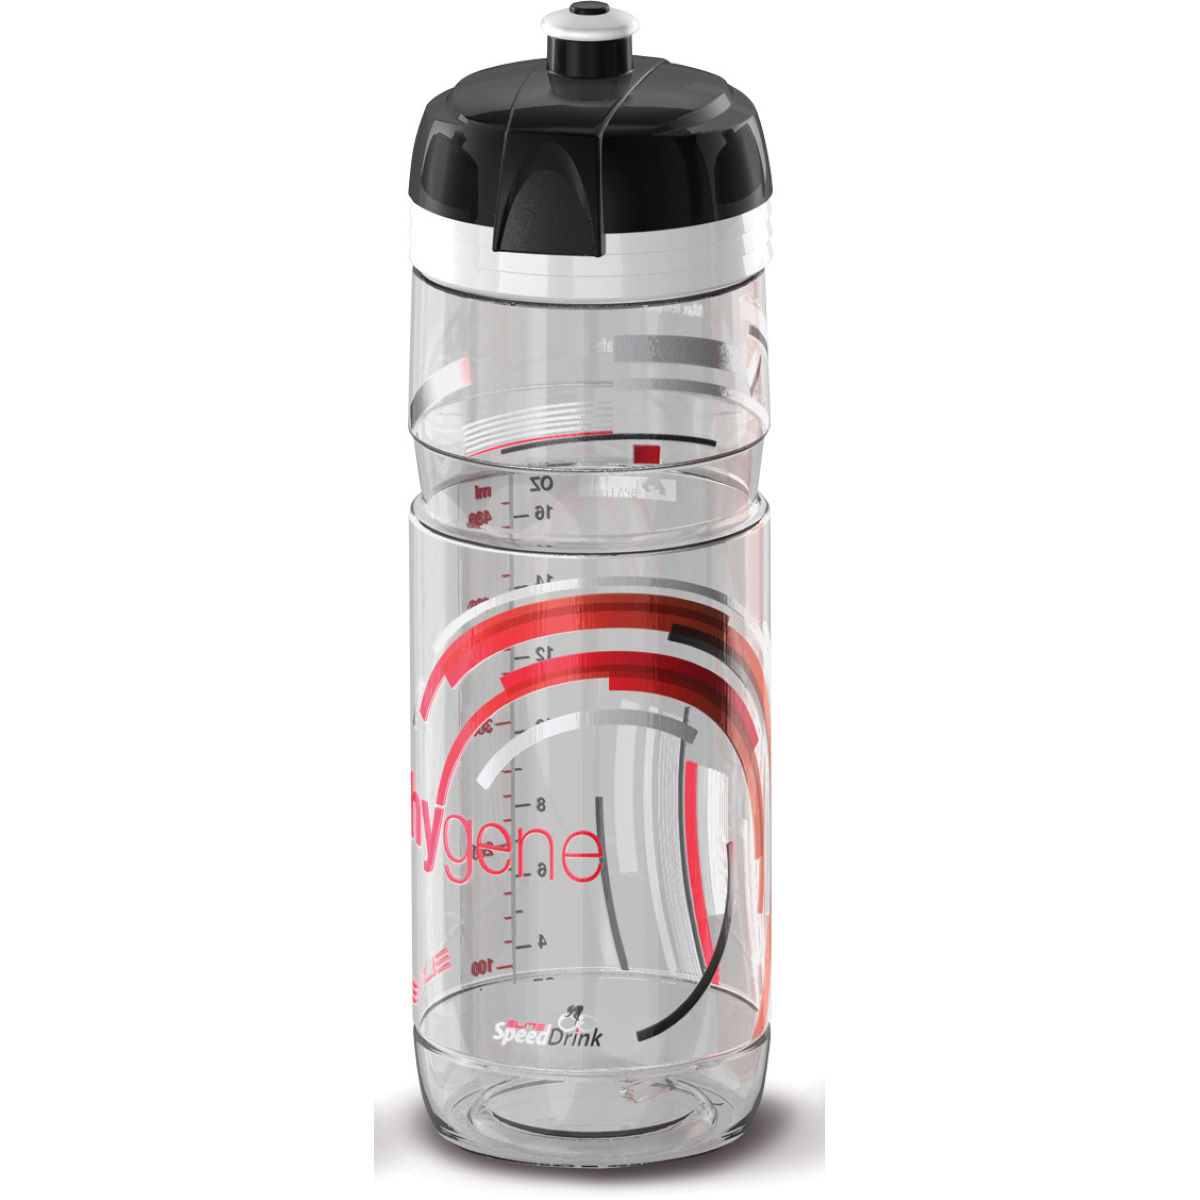 Elite Hygene Super Corsa 750ml Water Bottle